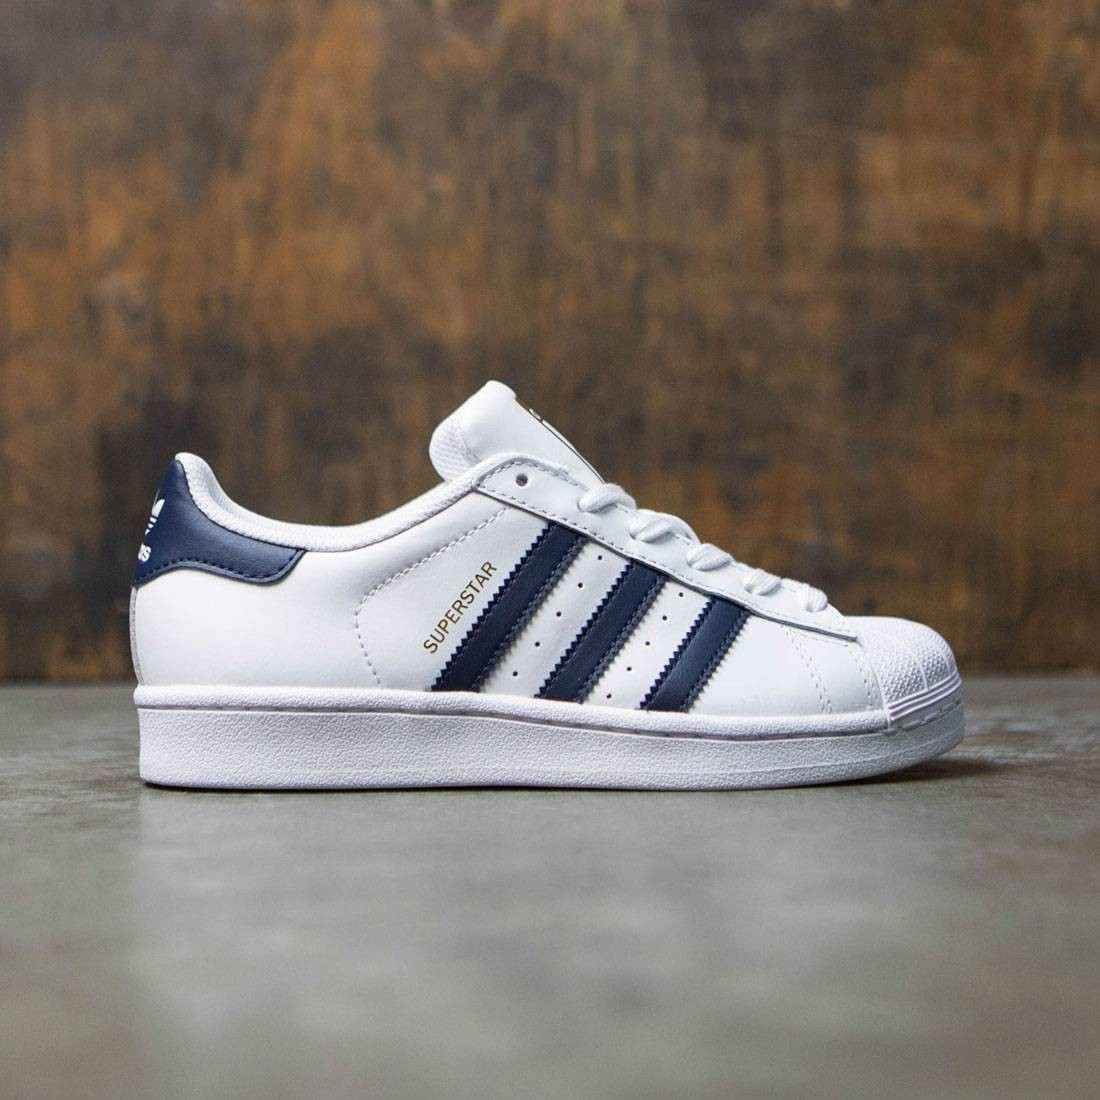 adidas Originals Superstar Navy White Soleracks